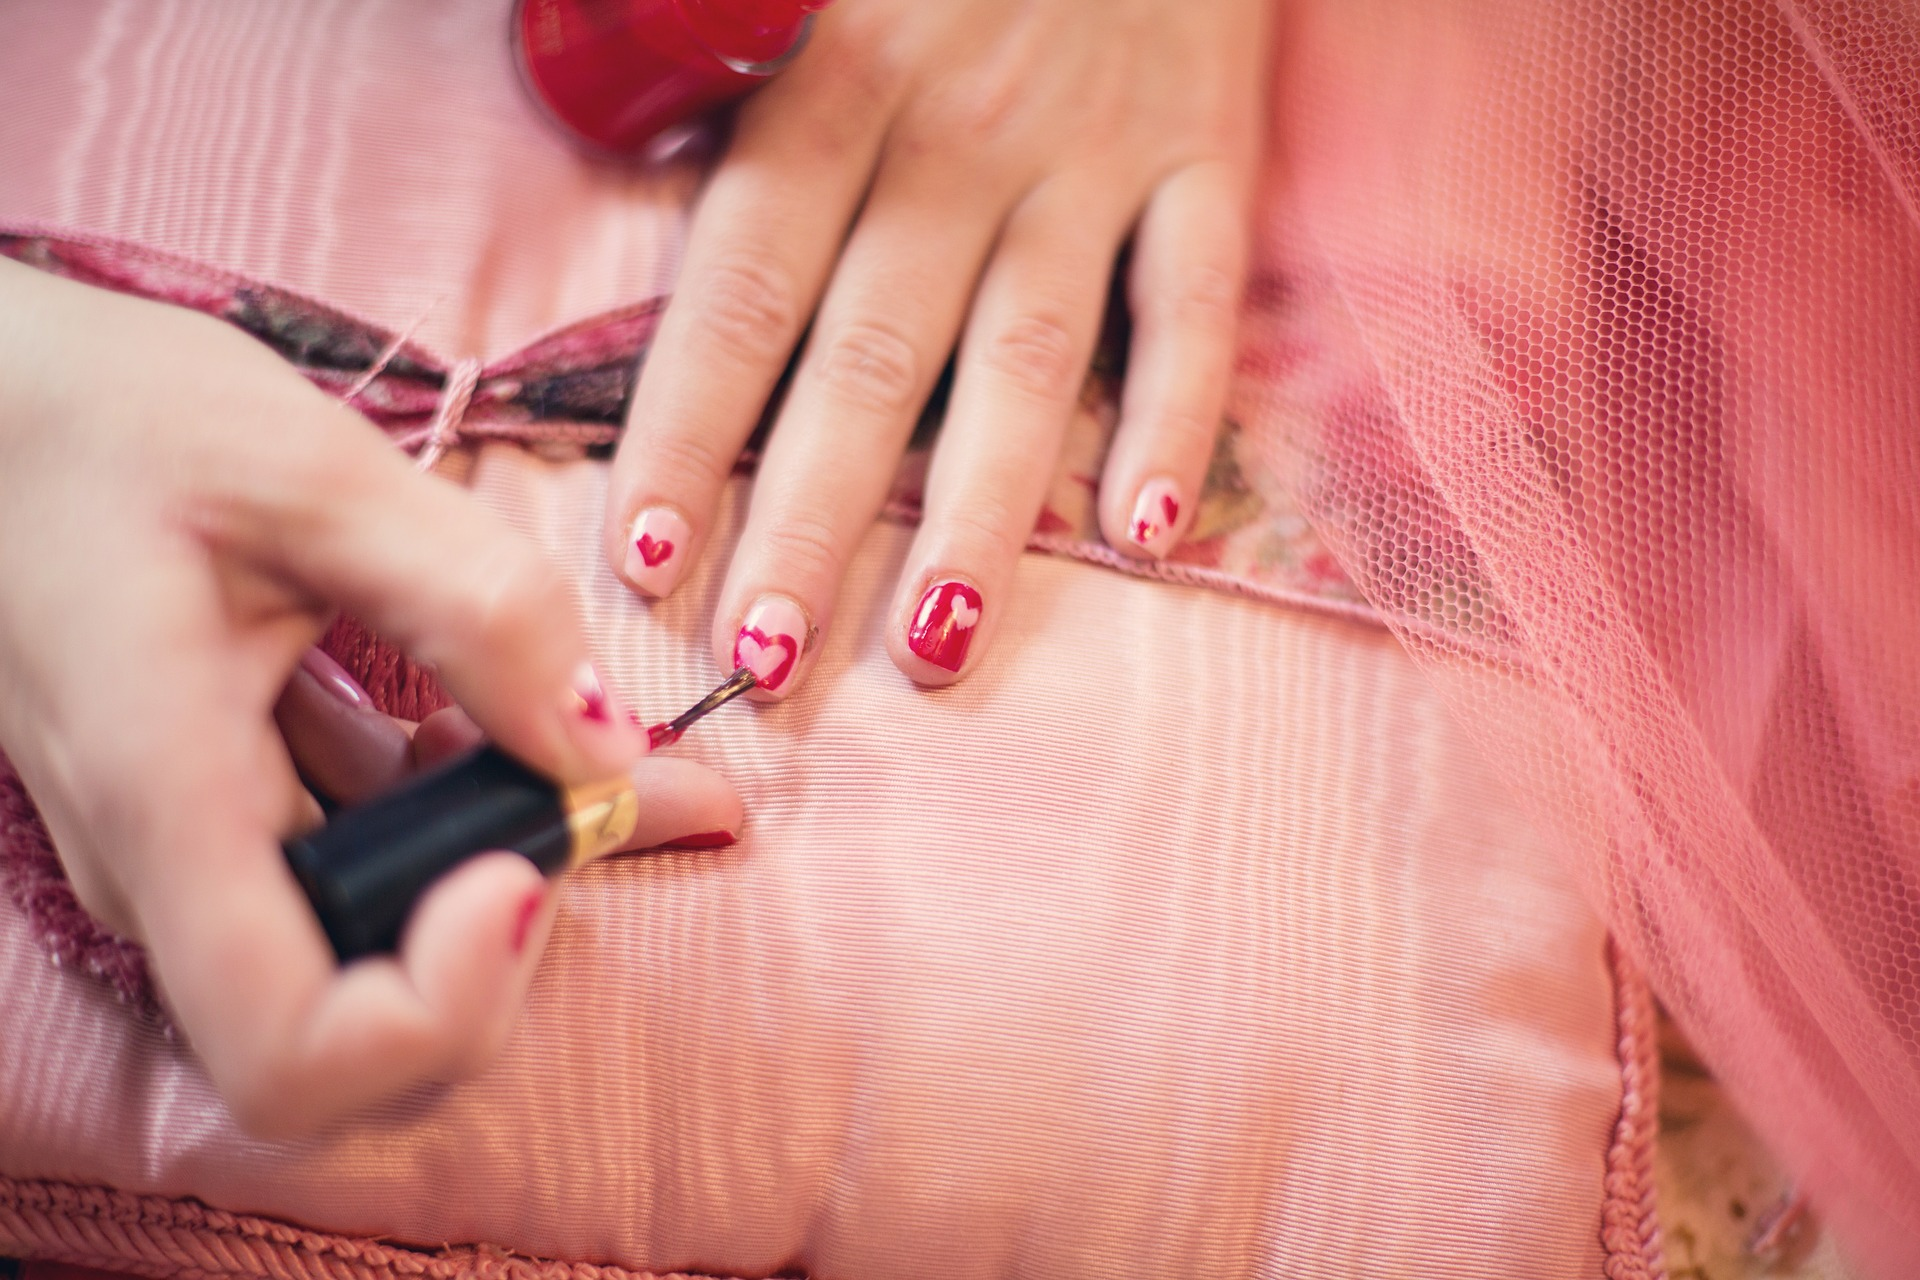 Subscribe to these YouTube channels for the best nail art inspiration